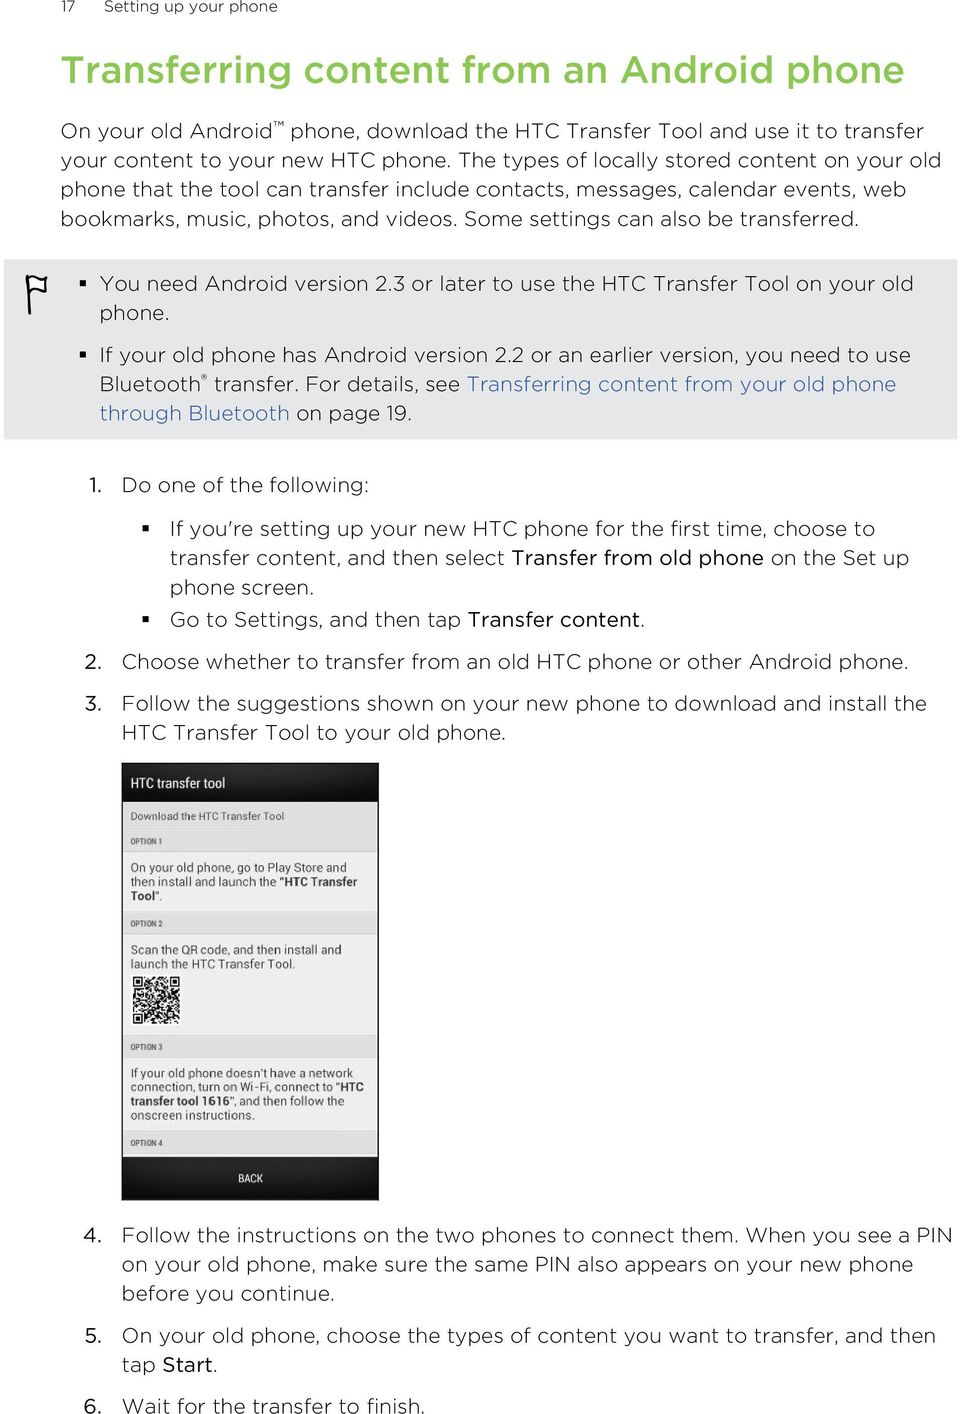 Some settings can also be transferred. You need Android version 2.3 or later to use the HTC Transfer Tool on your old phone. If your old phone has Android version 2.